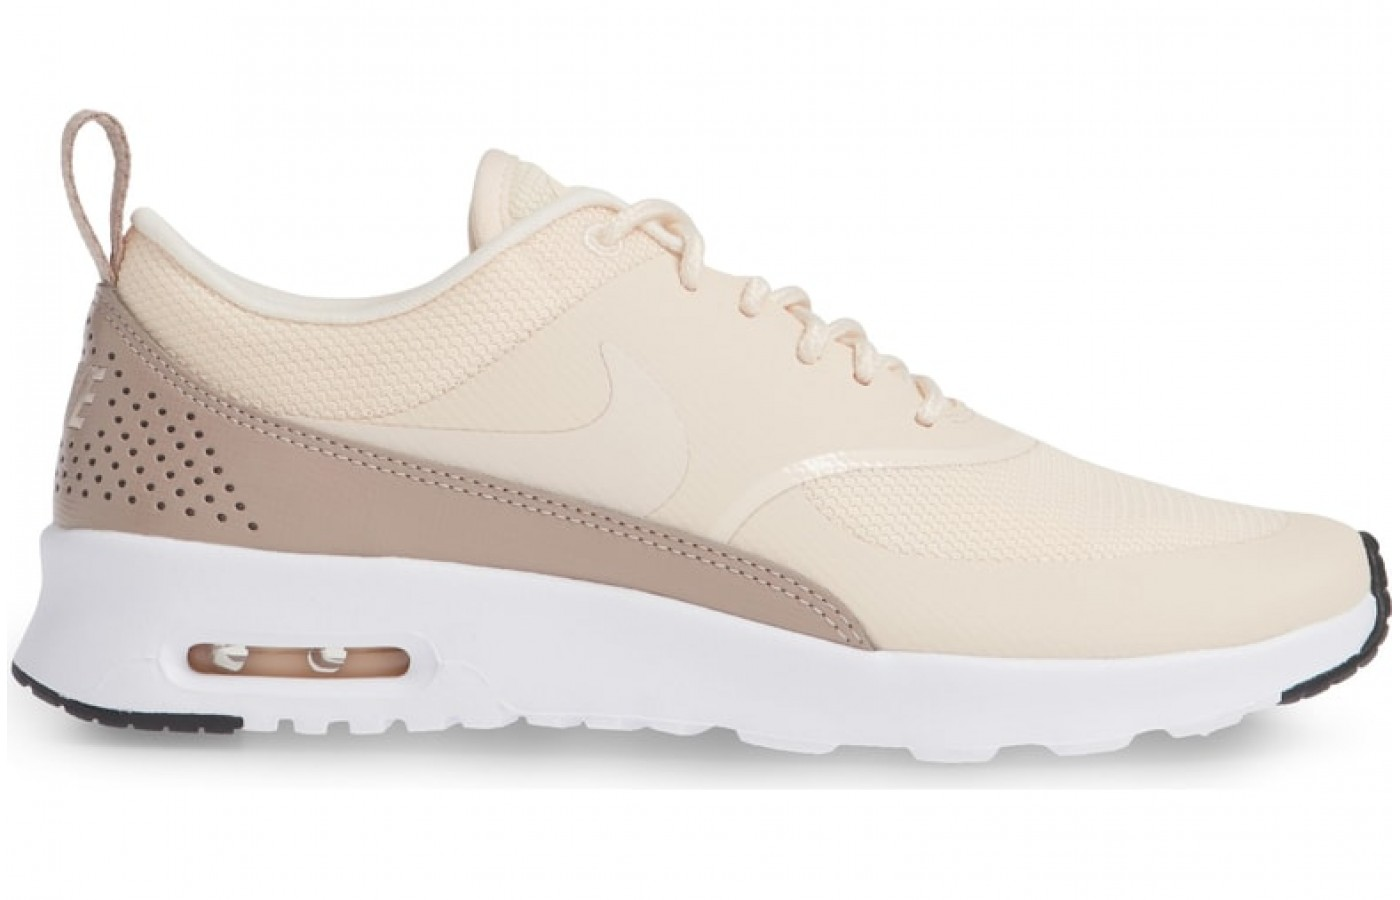 View of Nike Air Max Thea from the side, notice the thinner toe sole and the thicker heel for better design and better shock absorbtion